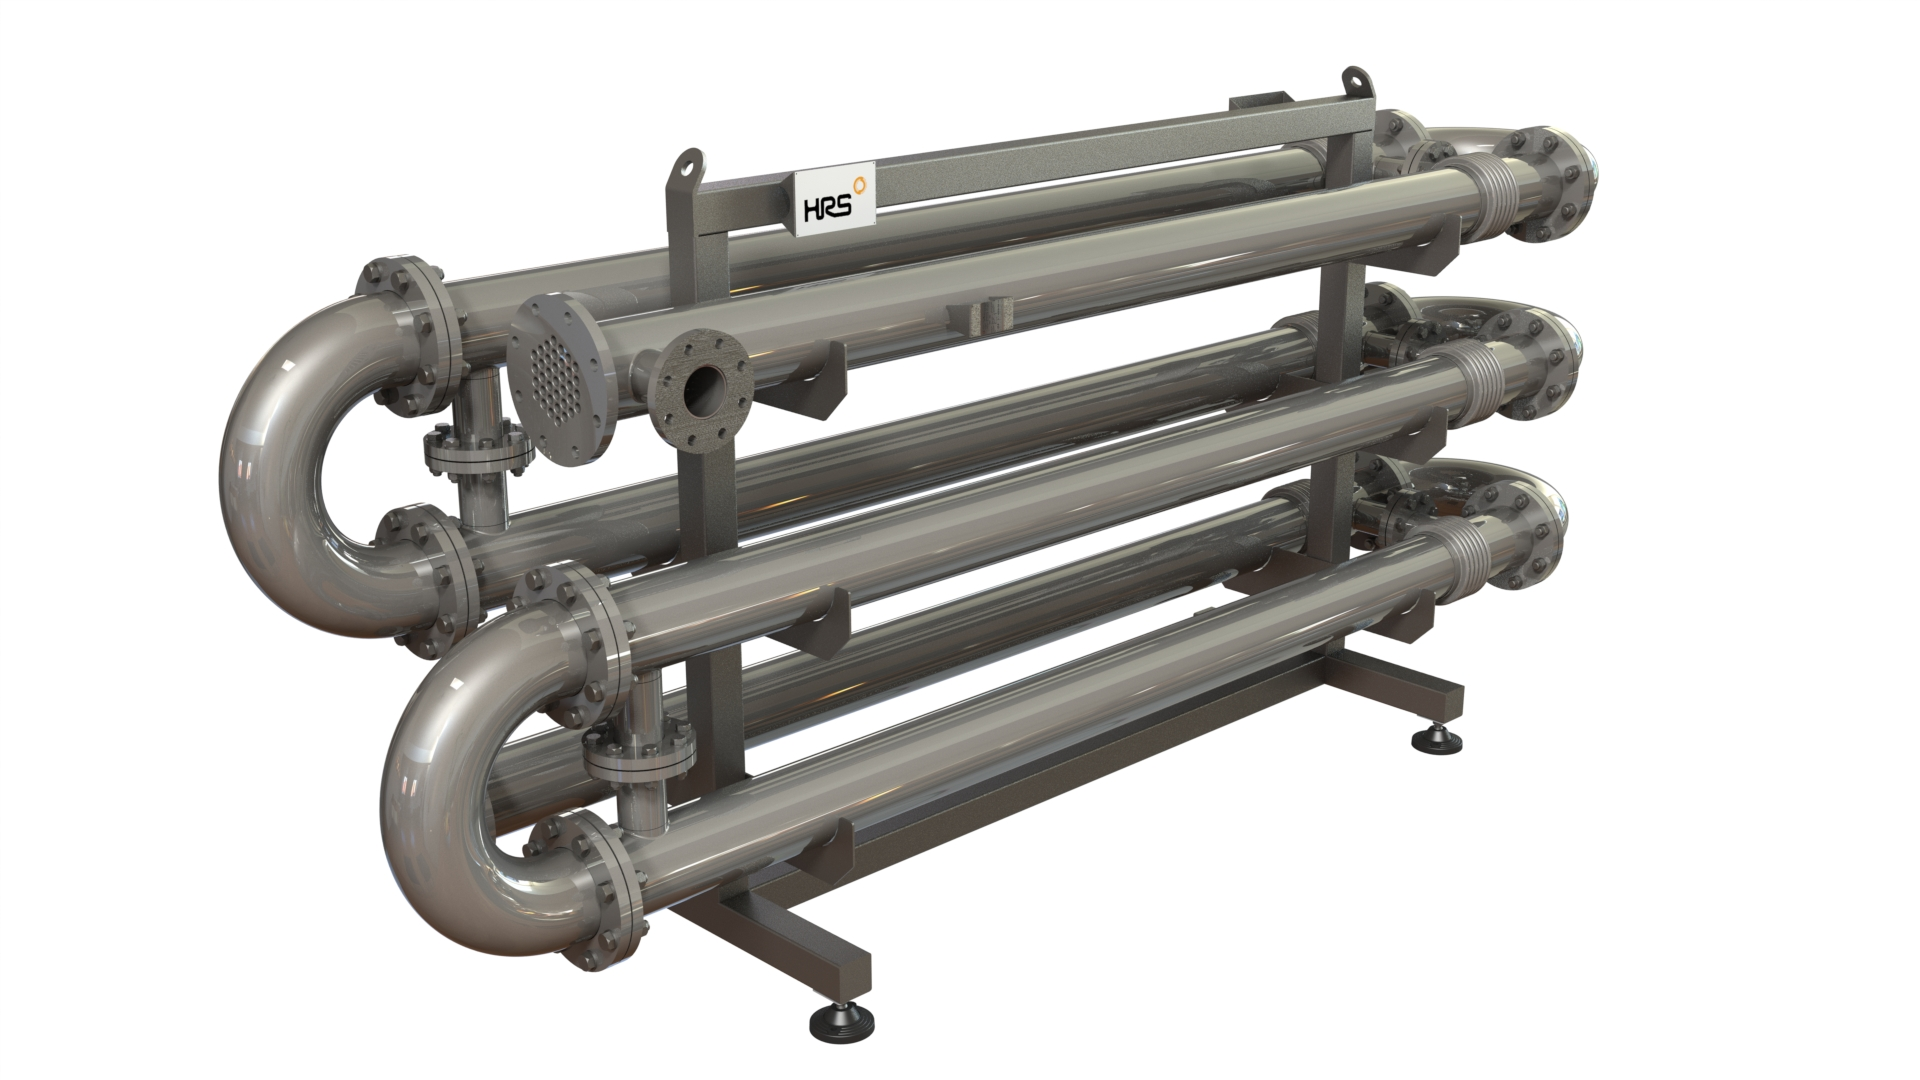 _HRS K Series Multi Tube Heat Exchanger